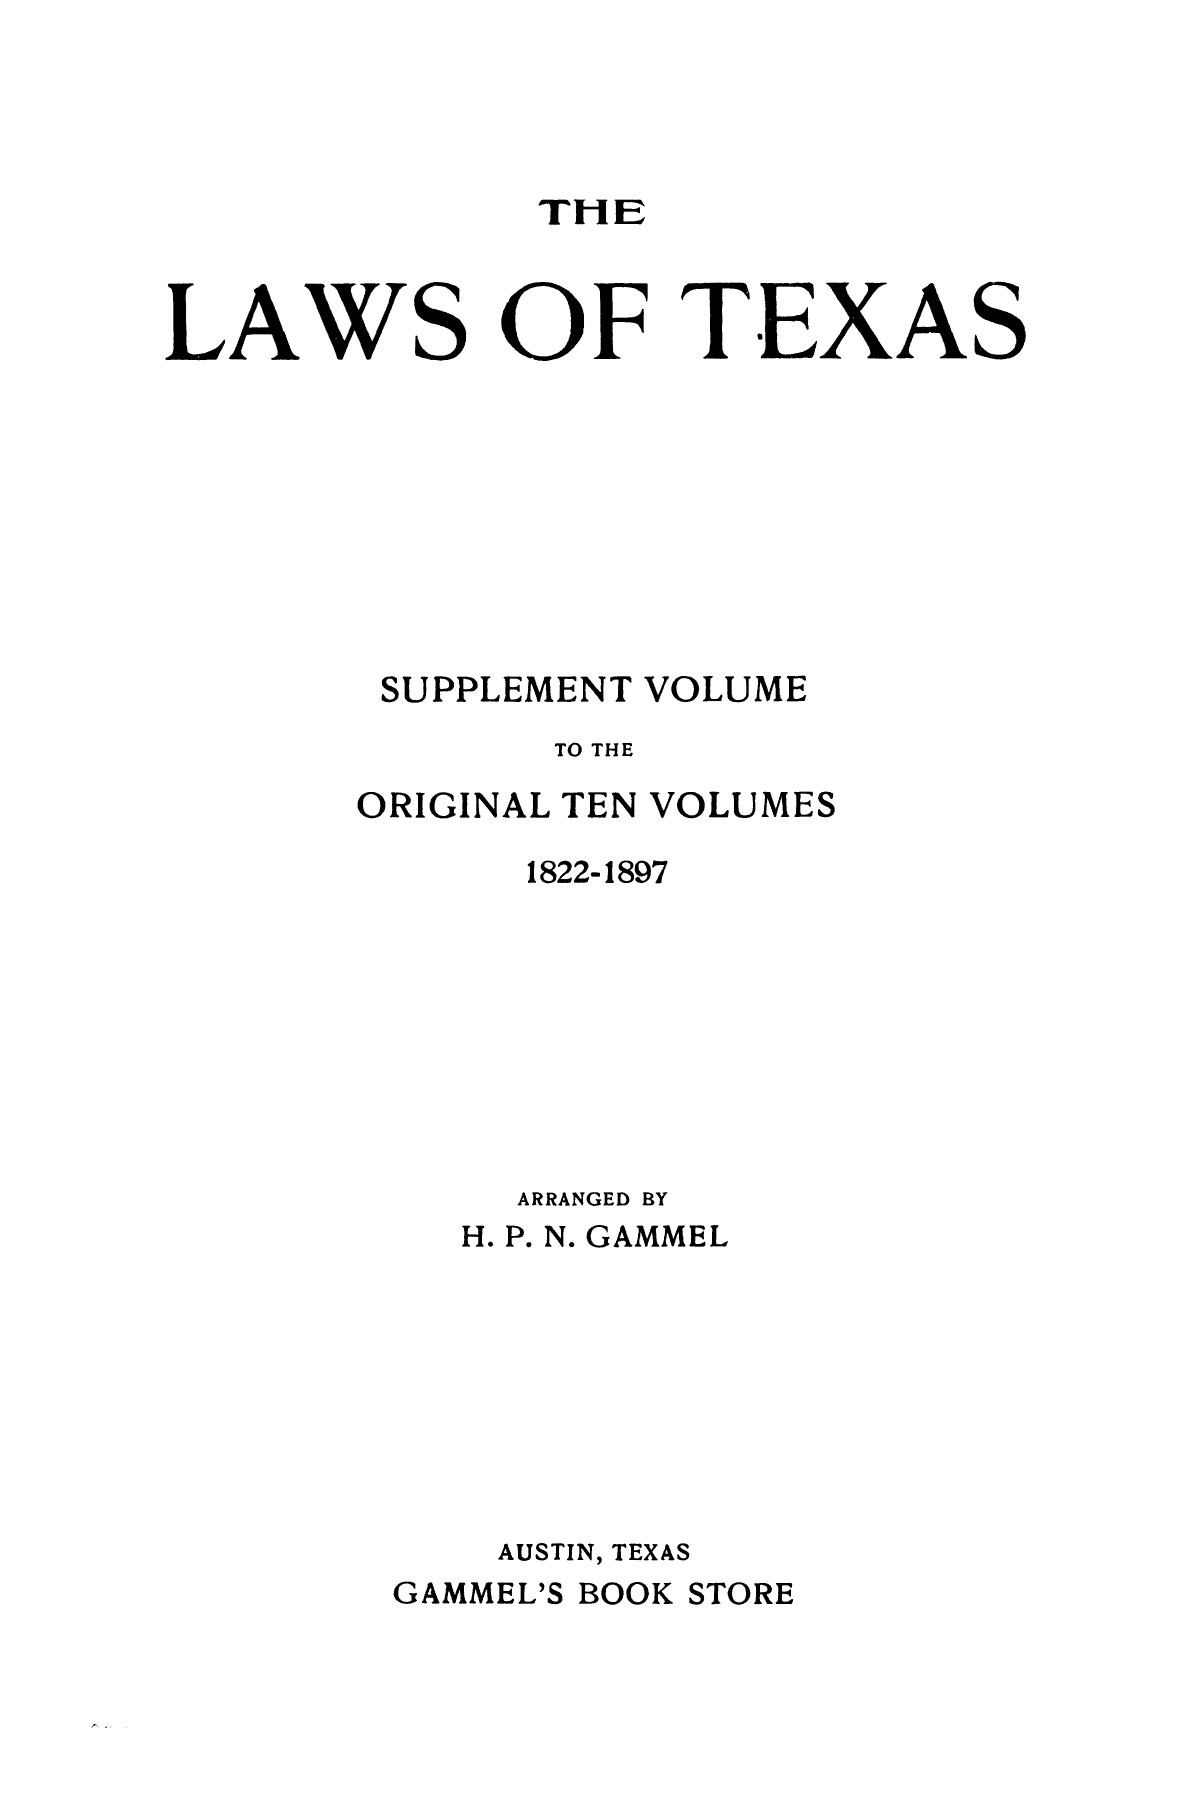 The Laws of Texas, 1917-1918 [Volume 18]                                                                                                      [Sequence #]: 1 of 1589